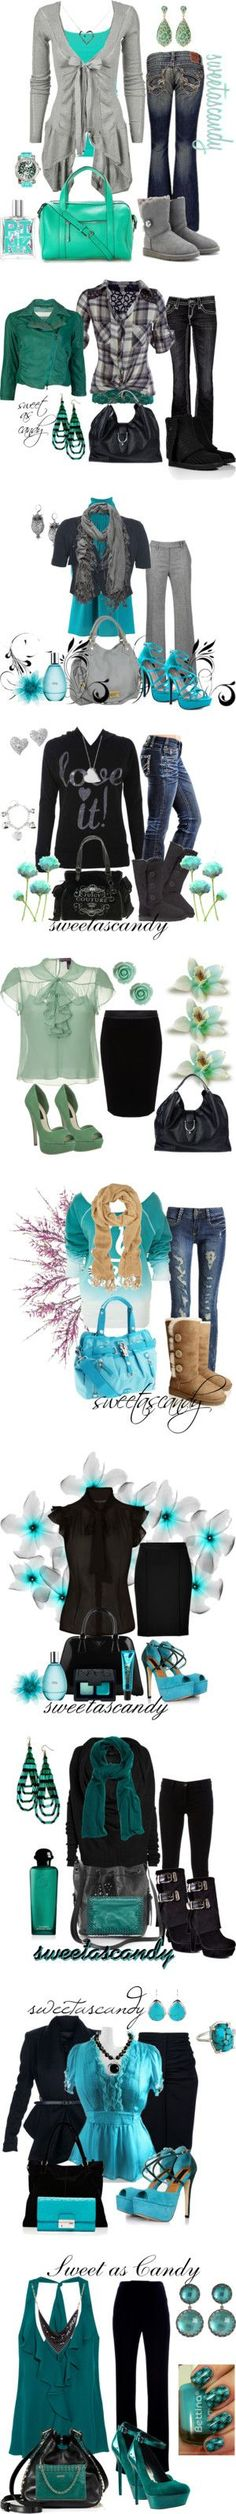 """turquoise, gray and black"" by sweetlikecandycane on Polyvore"